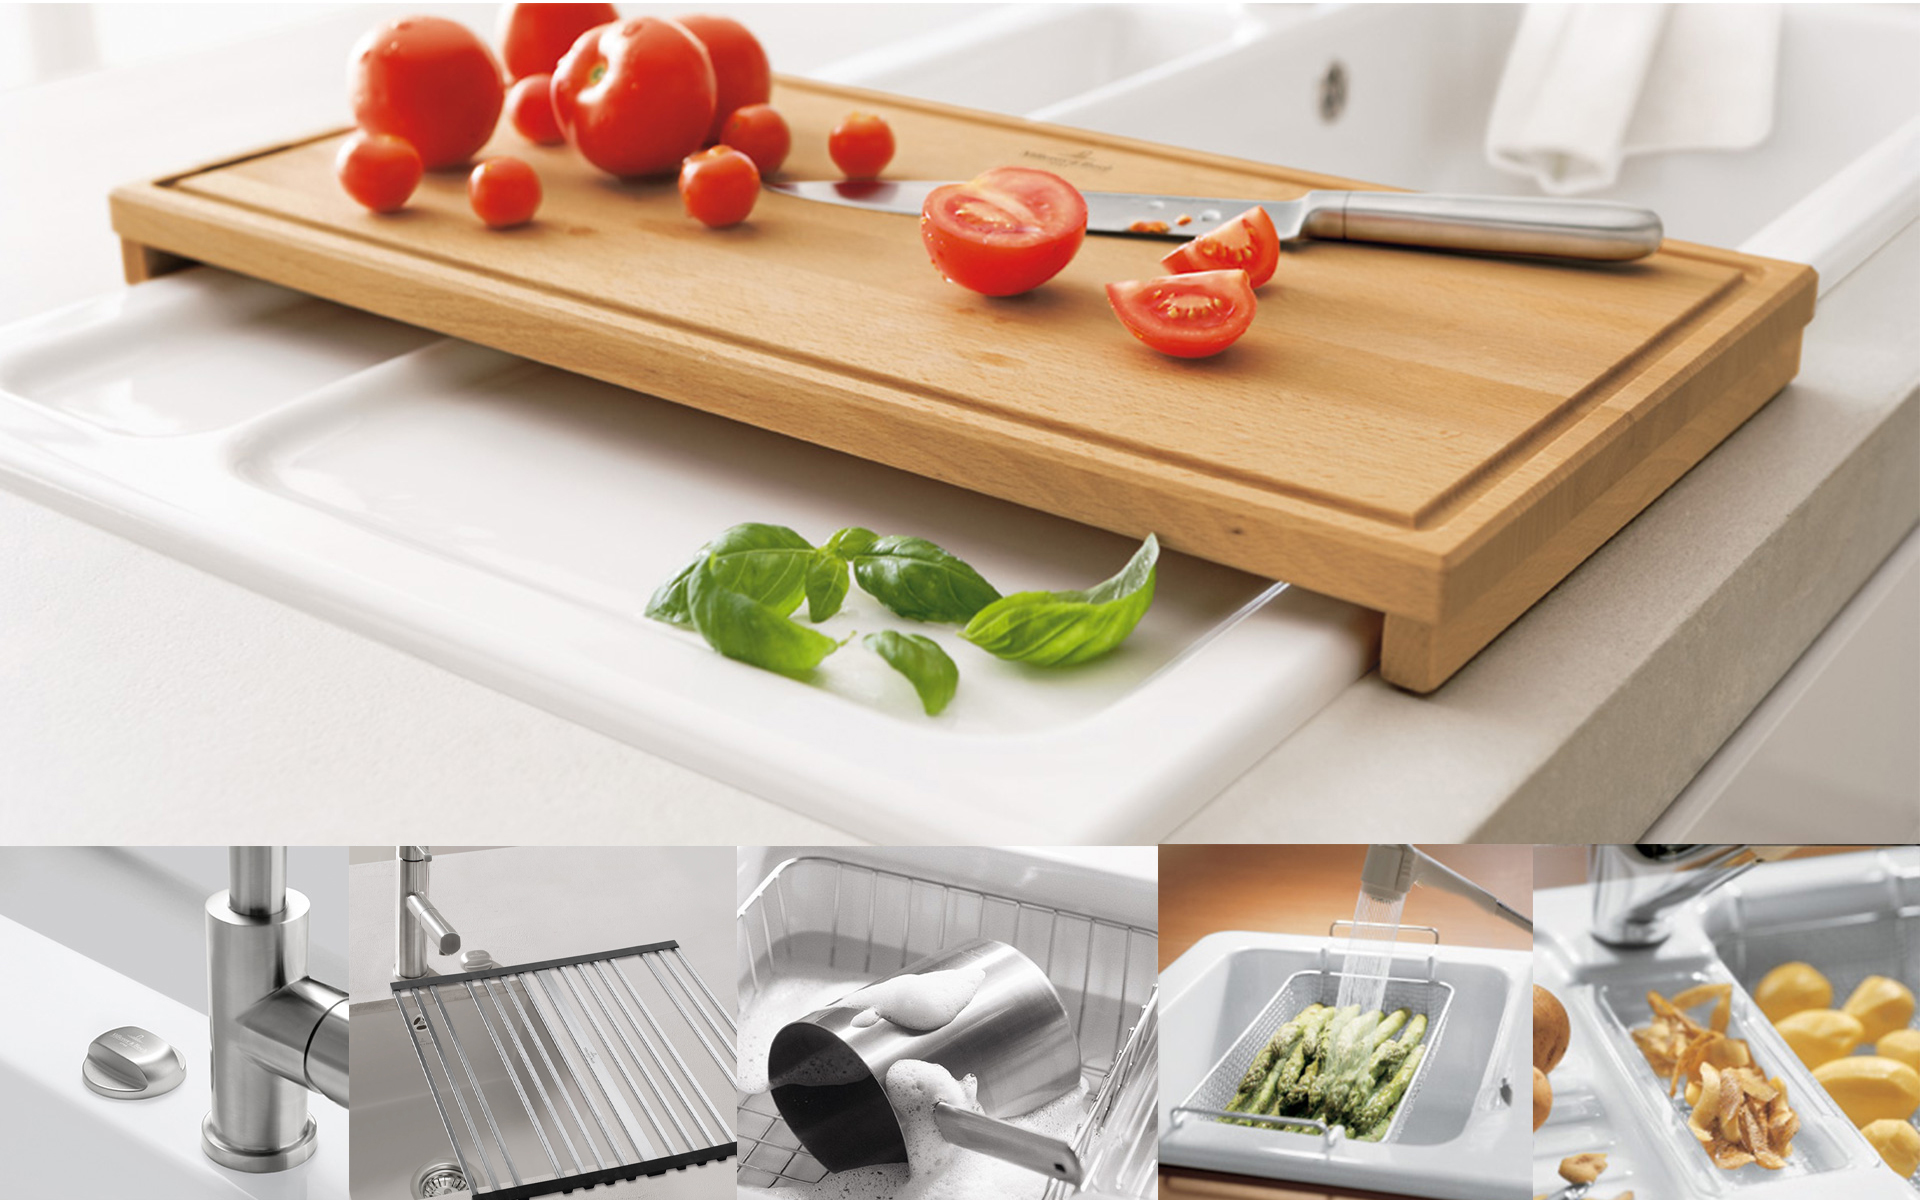 Kitchen accessories from Villeroy & Boch – for more fun in the kitchen